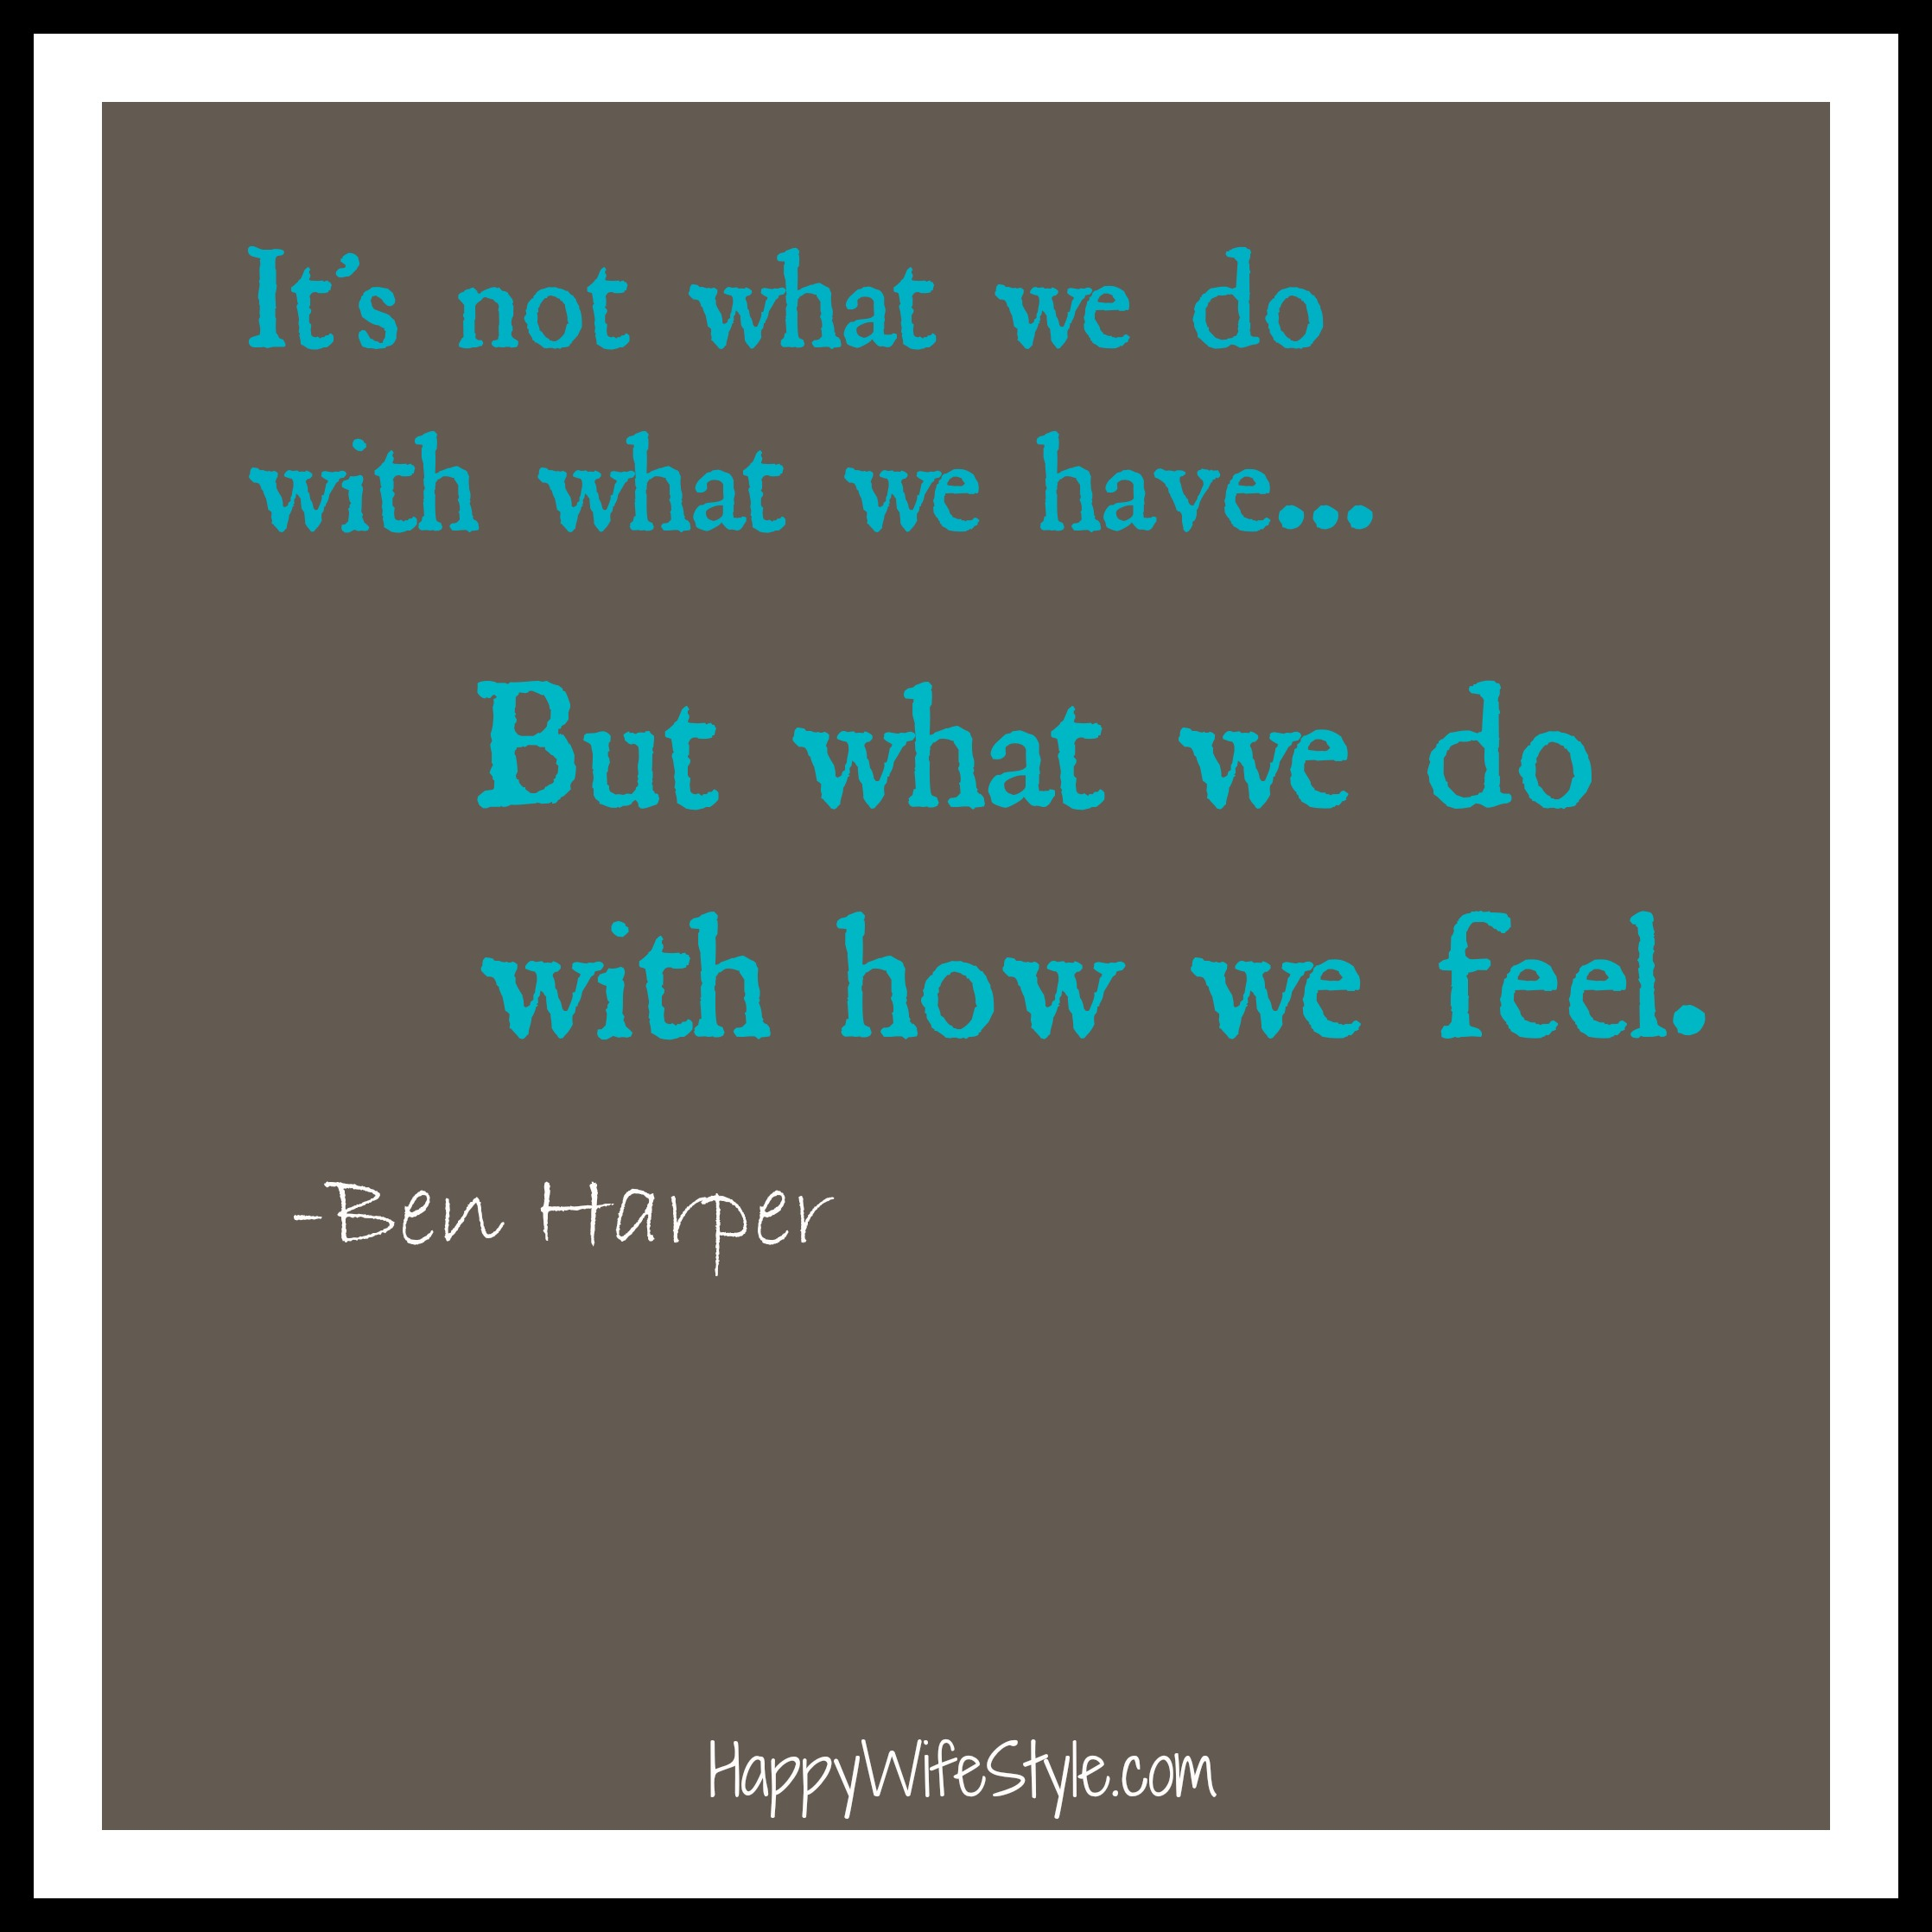 ben-harper-quote